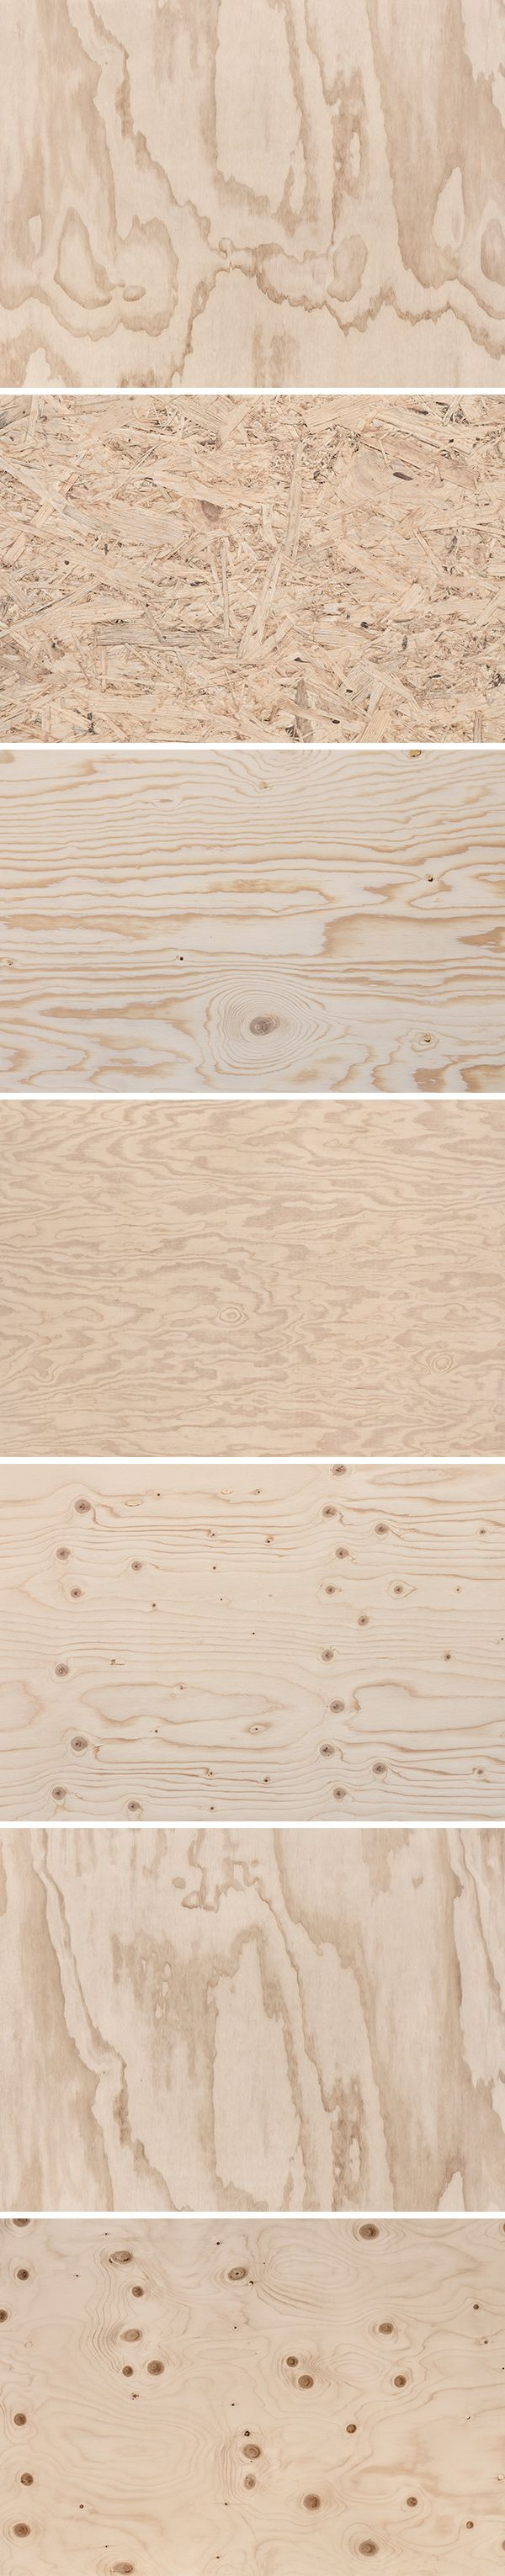 7 Plywood Textures | GraphicBurger